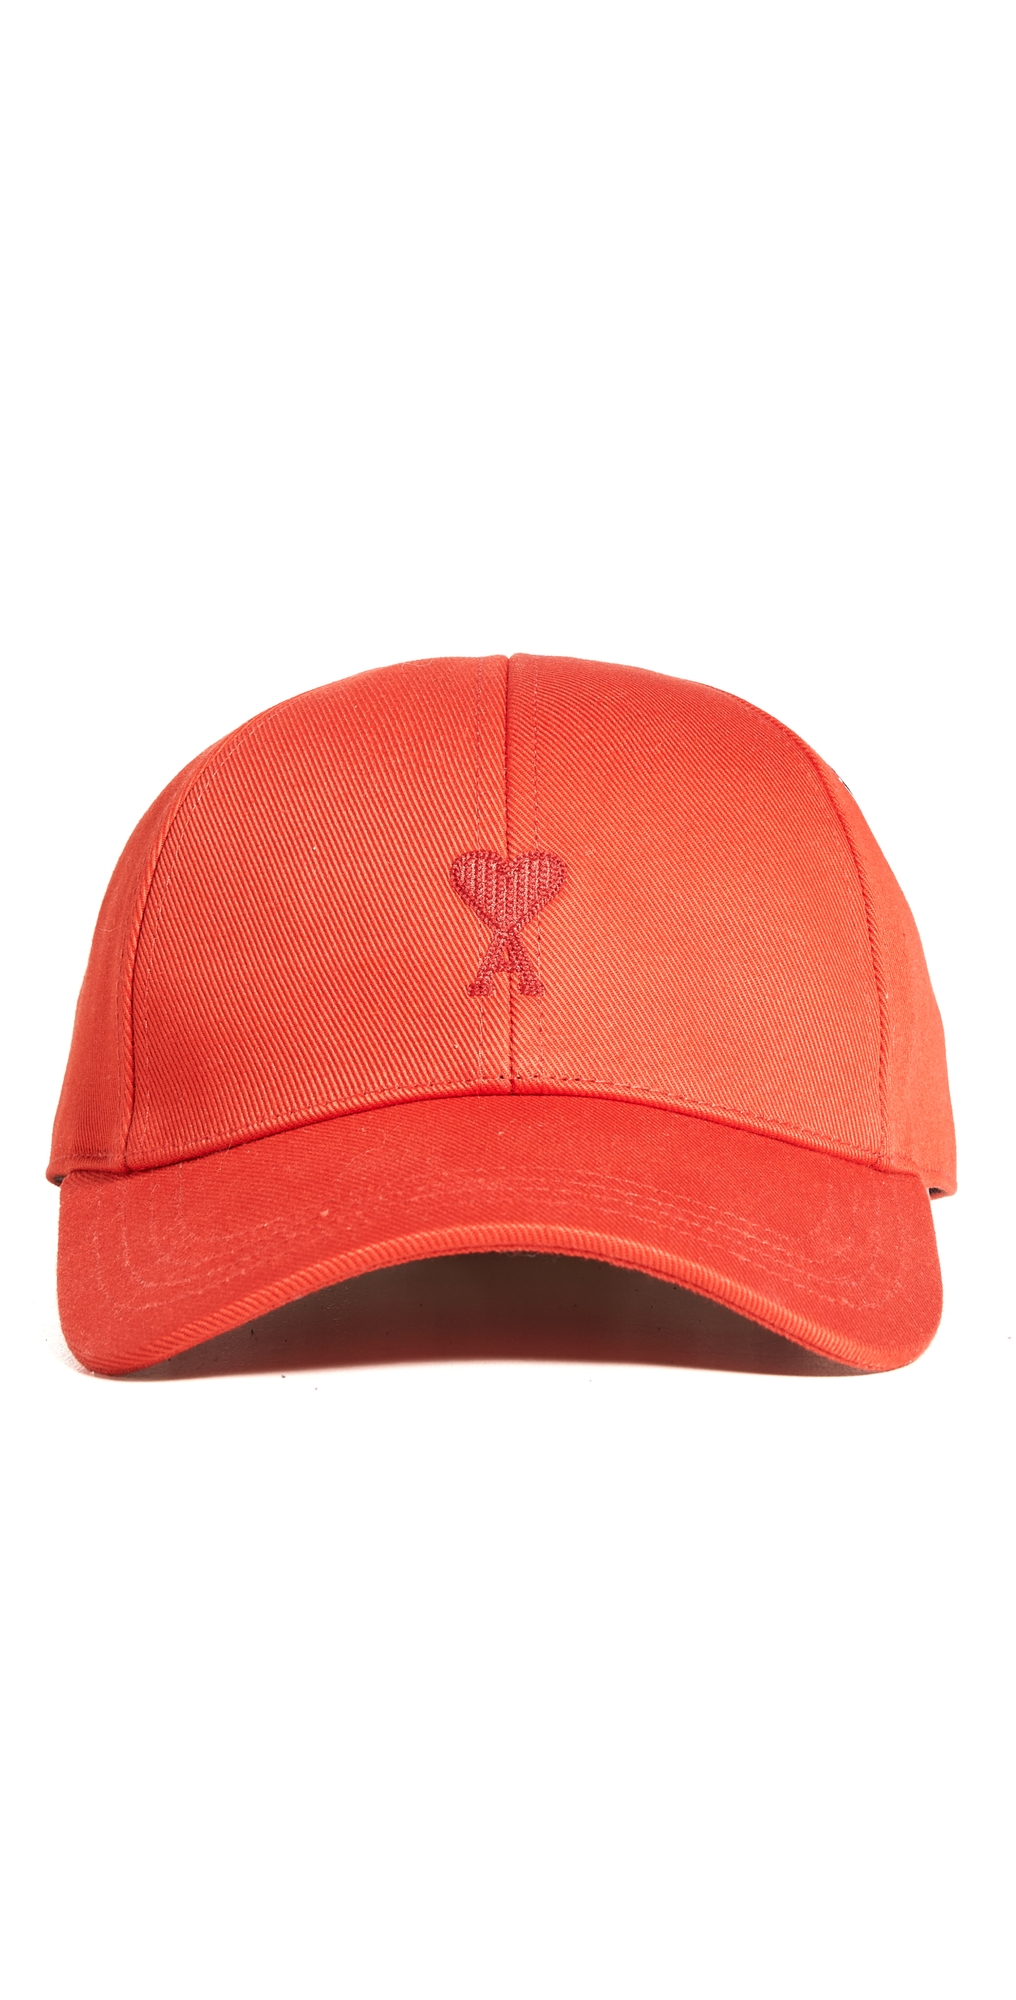 Cap With Adc Embroidery